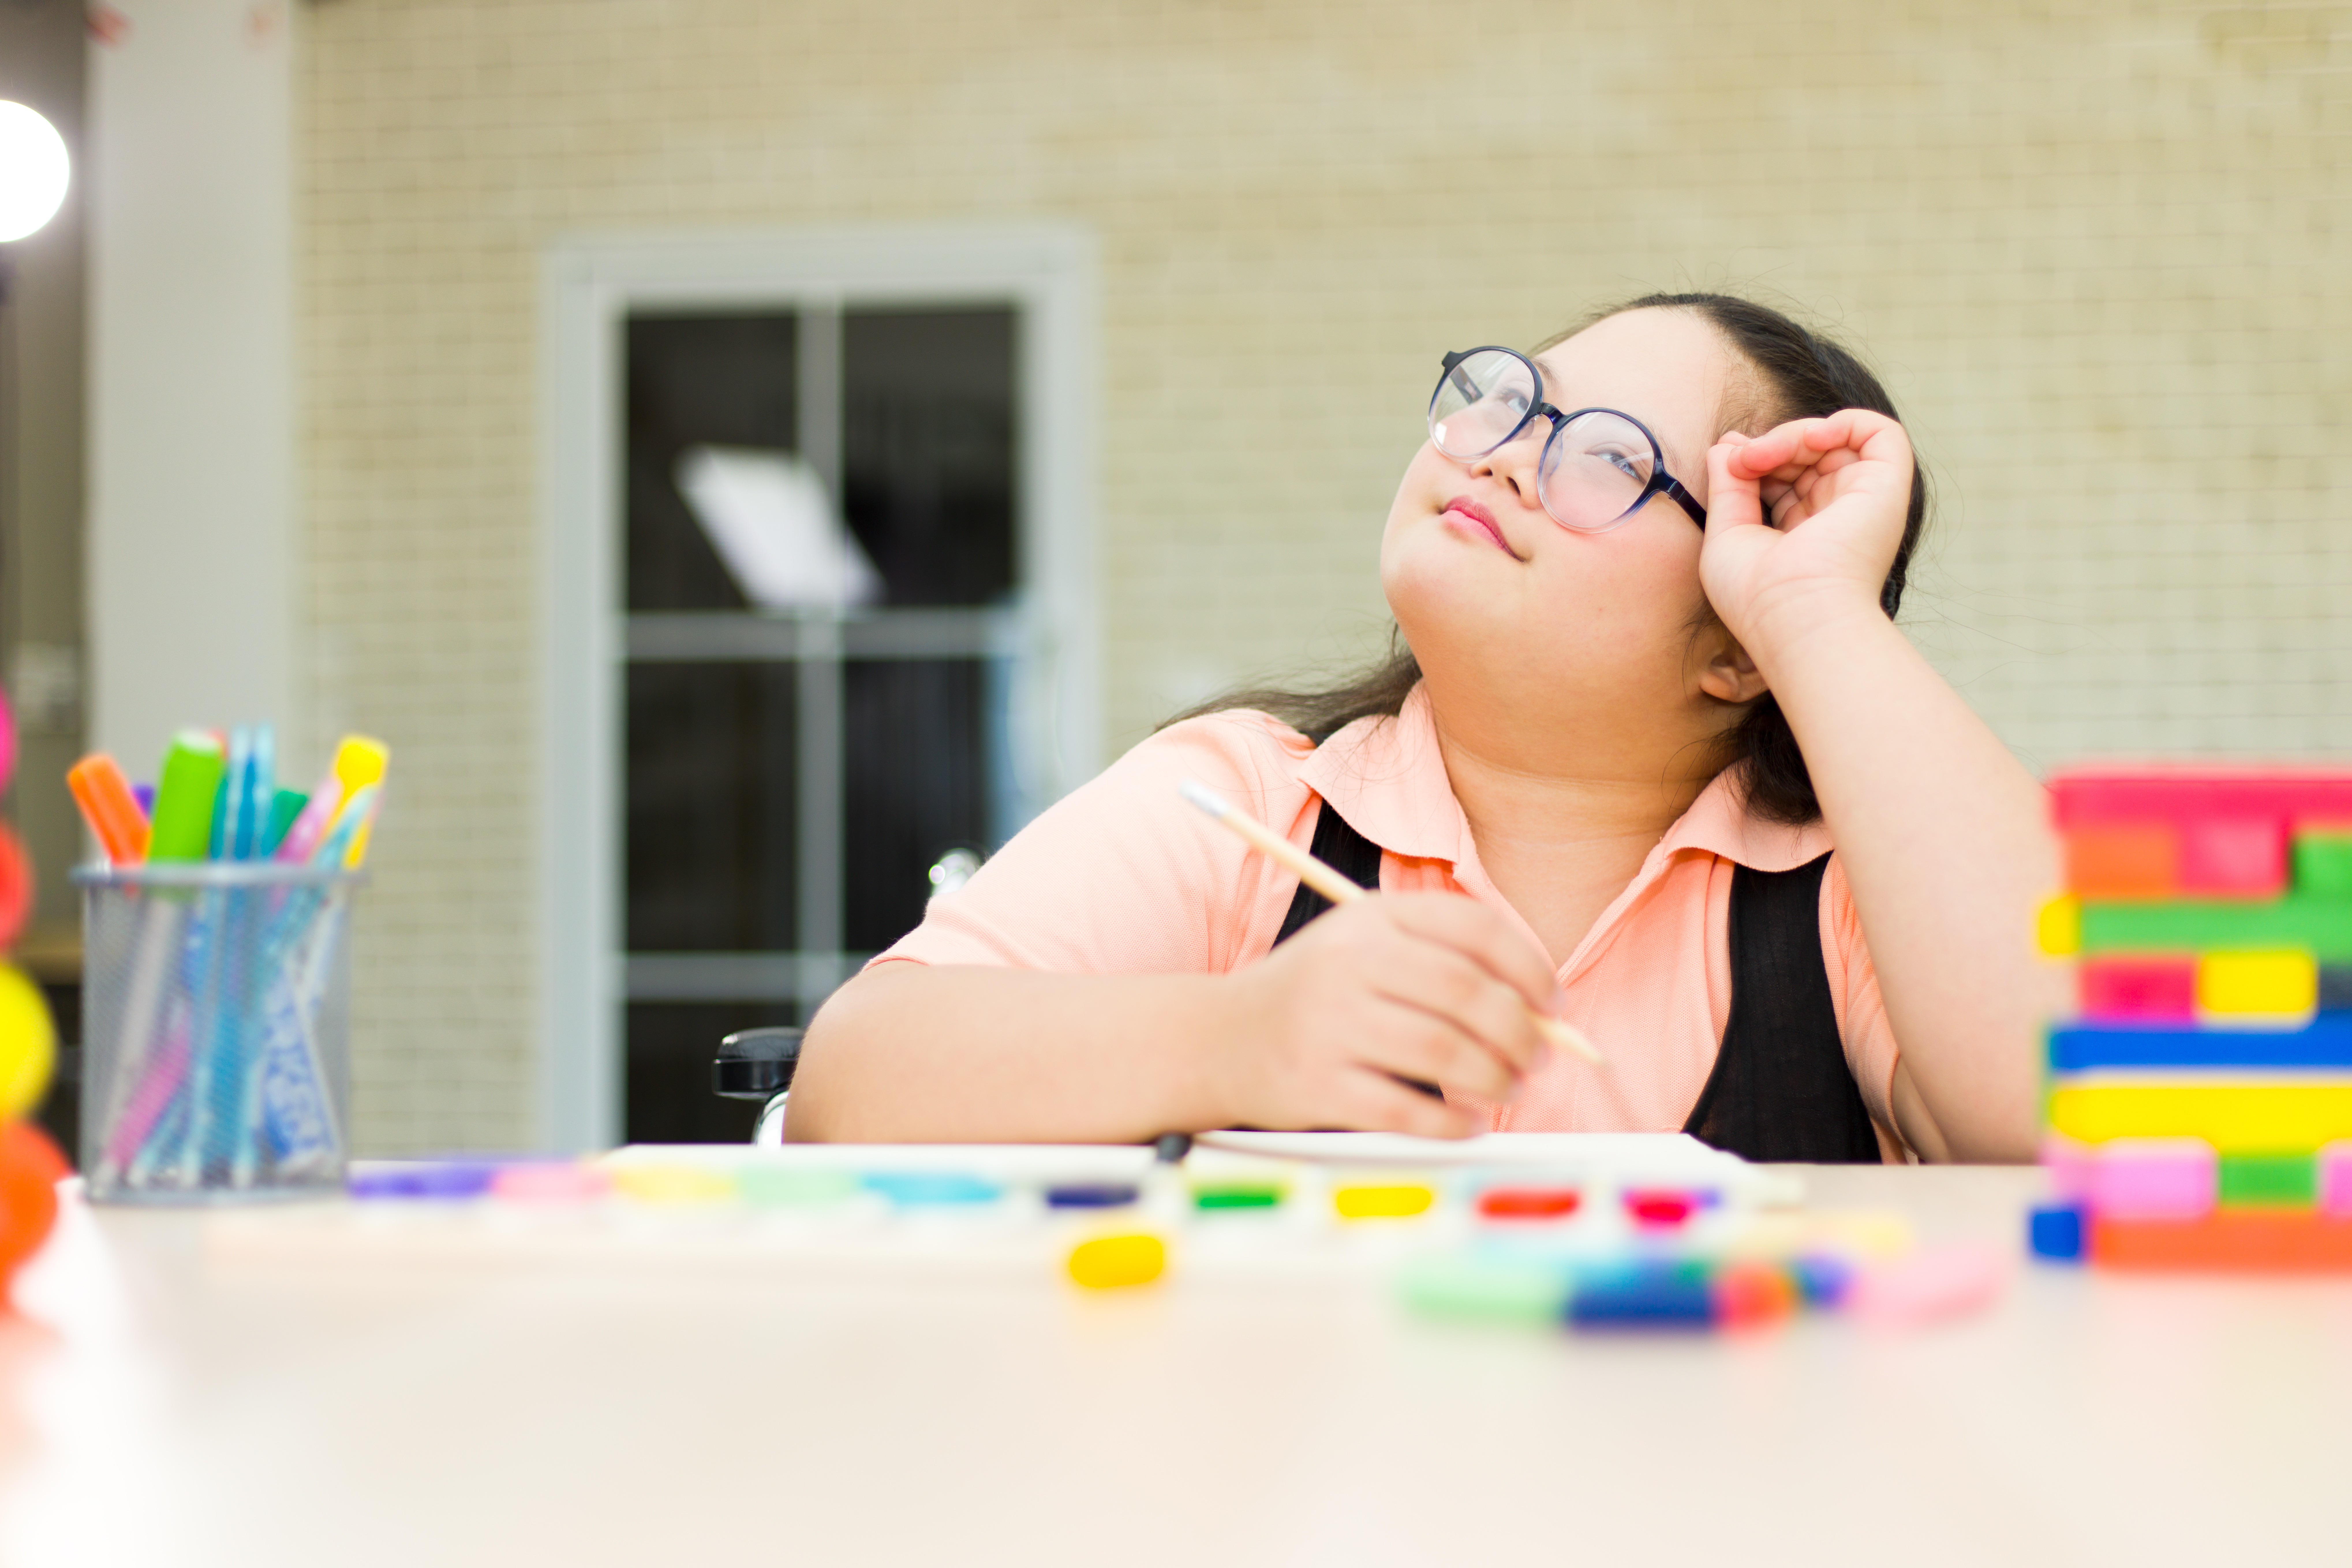 Young girl with an IDD sitting at table with pencil in hand looking up to her right. There are colorful blocks and  markers on the table as well. She is wearing a peach shirt with a black vest and glasses.